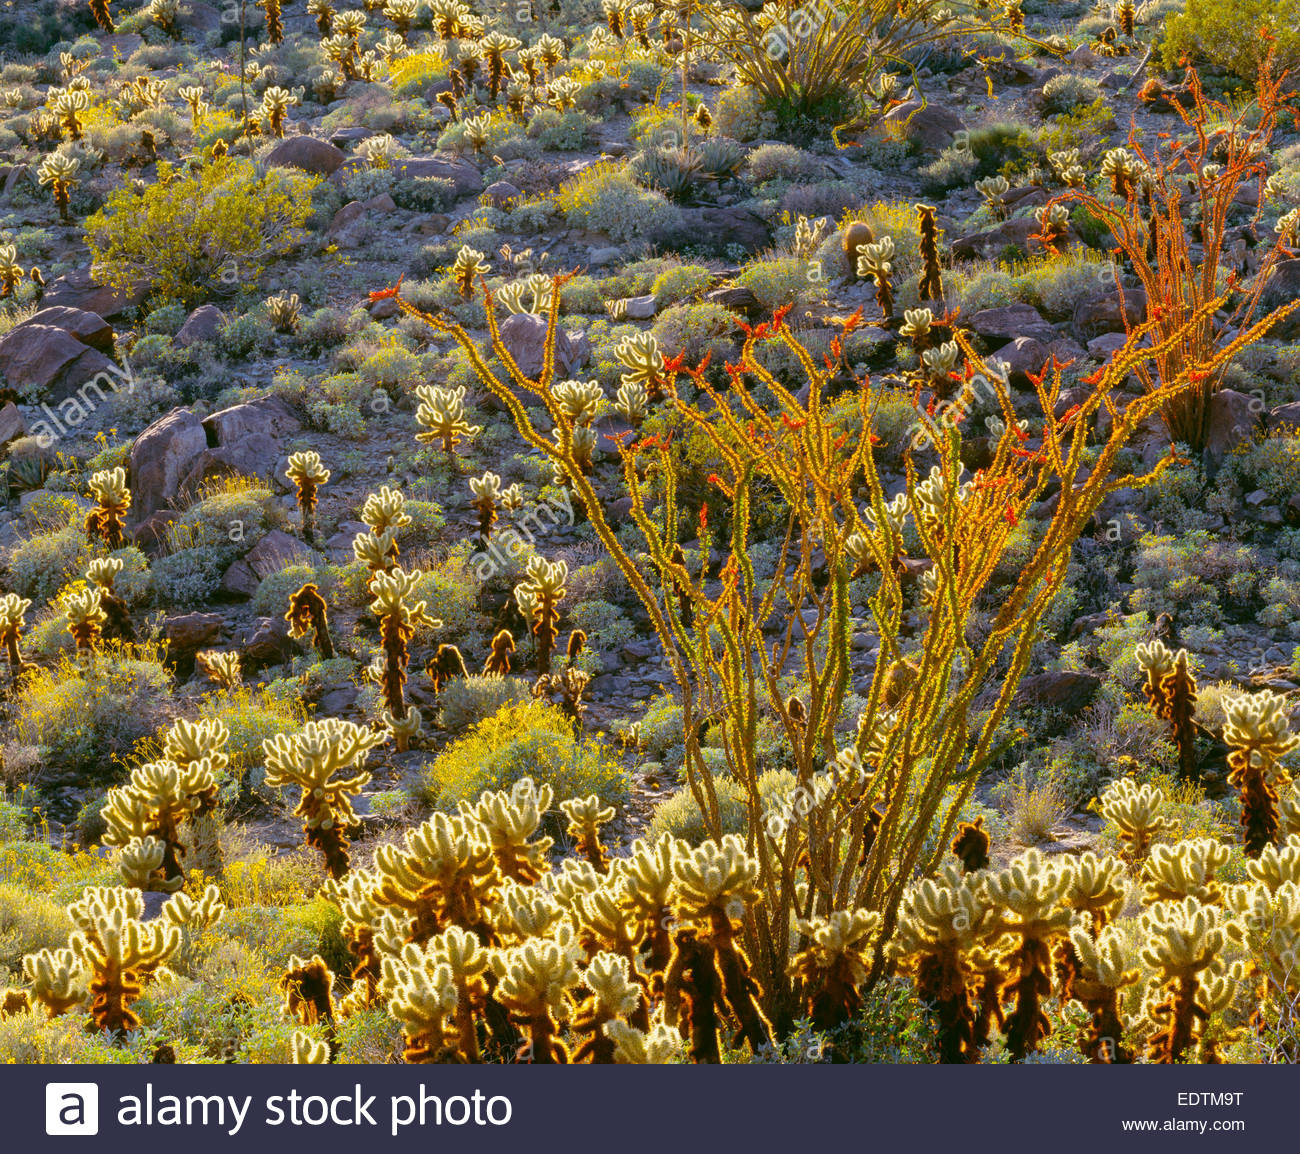 Blooming ocotillo and teddy bear cholla cactus, Mojave Desert, Anza-Borrego State Park, California. - Stock Image